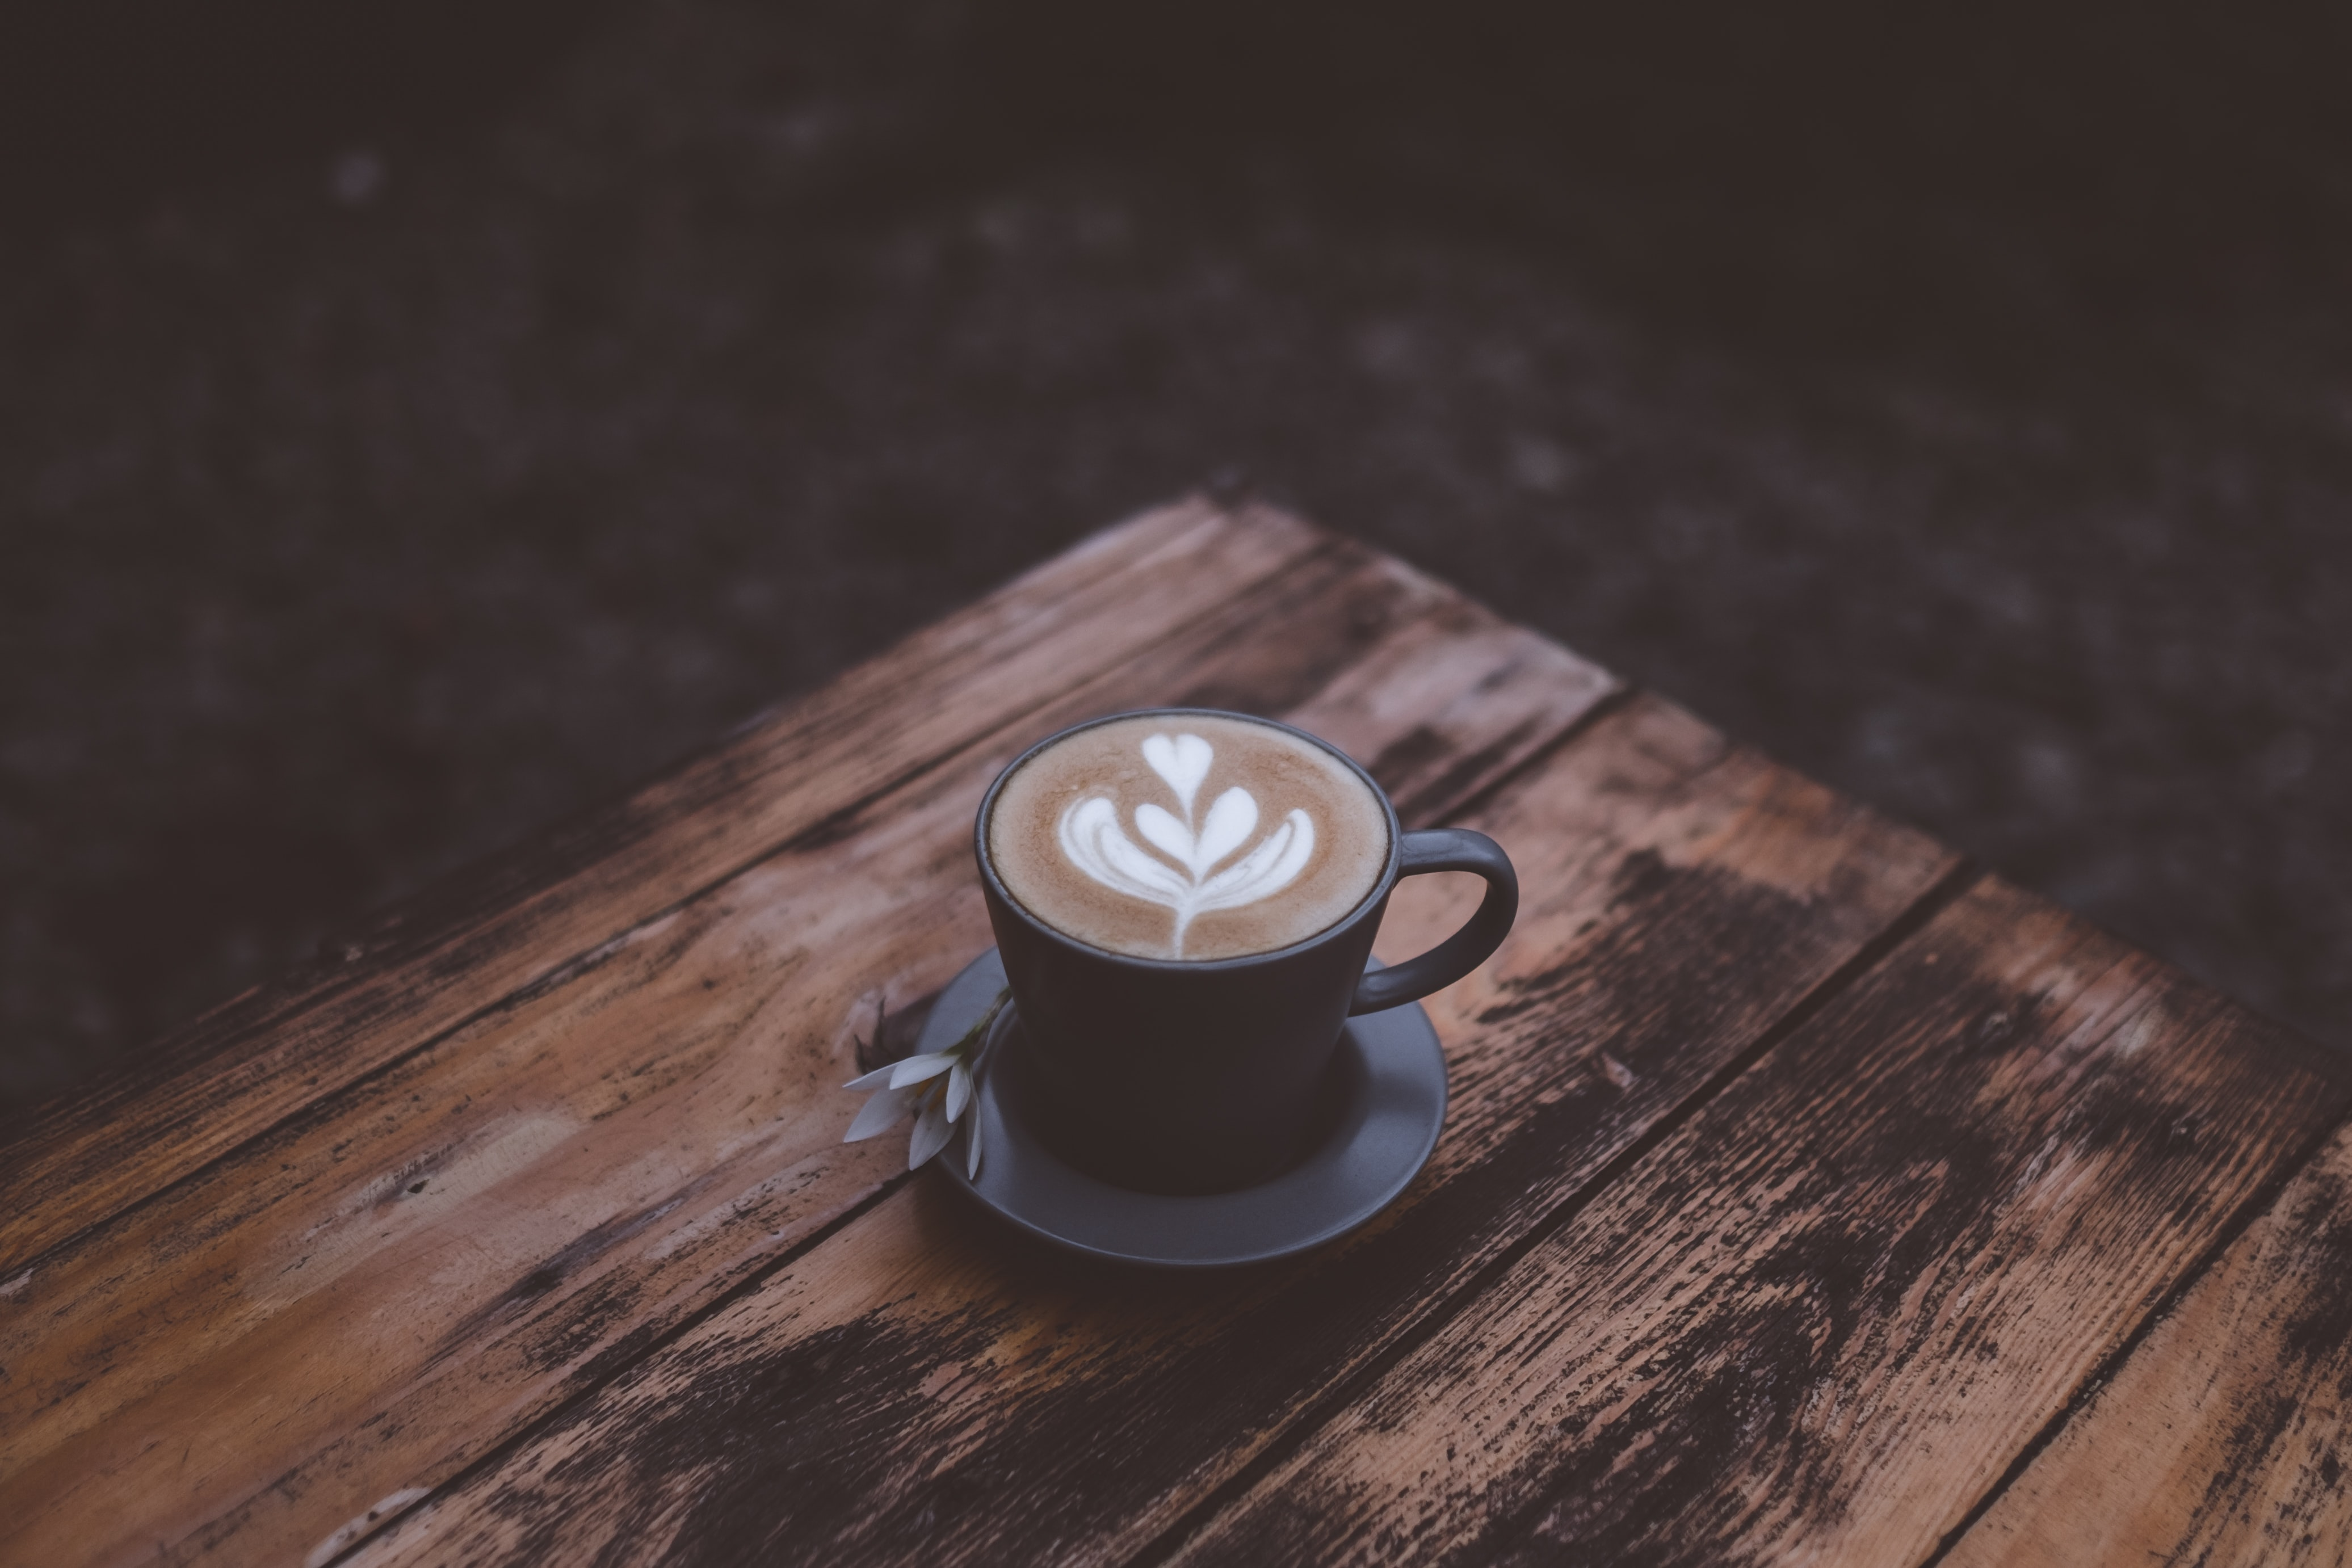 Latte art on textured wooden table in black cup